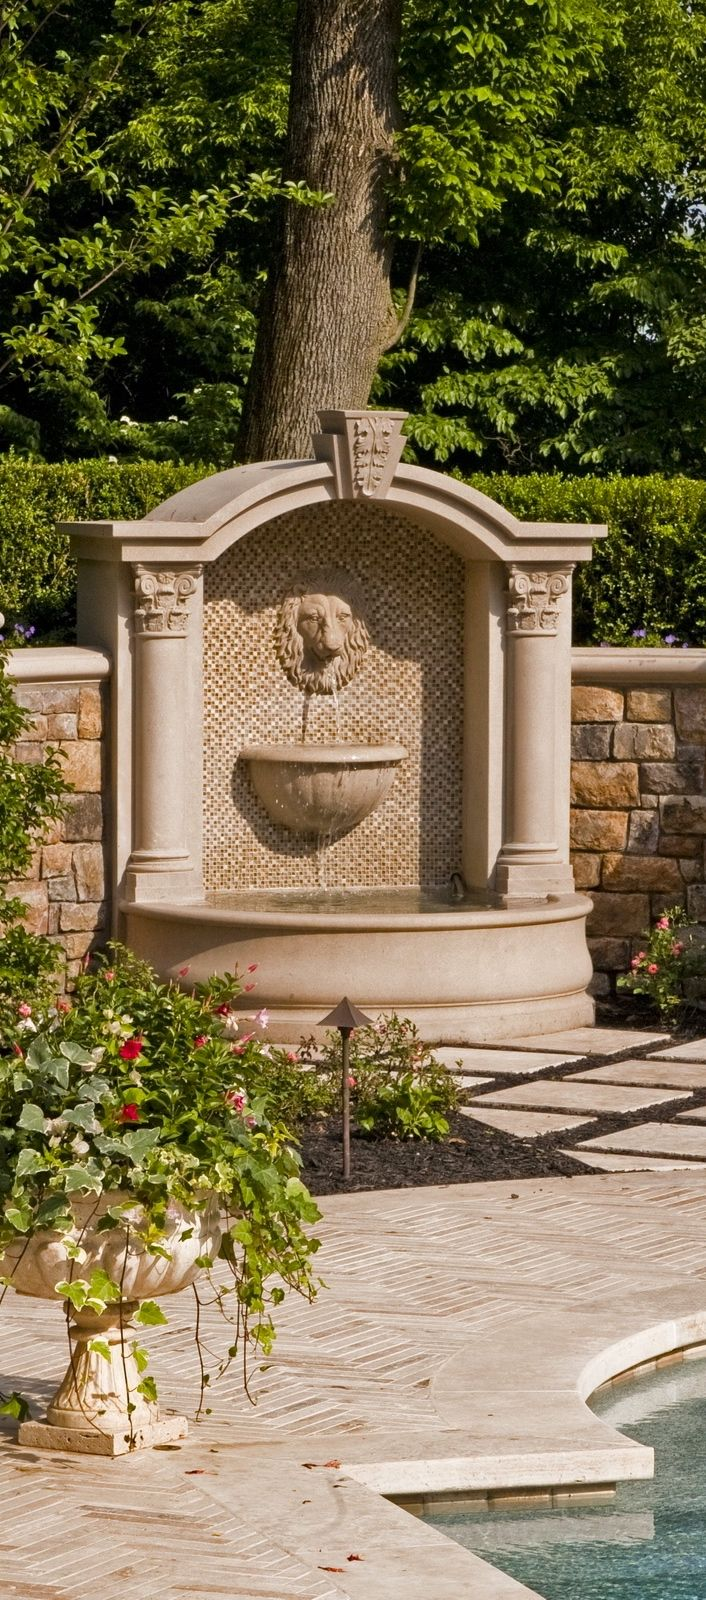 179 best Fountains images on Pinterest   Water fountains, Fonts and ...